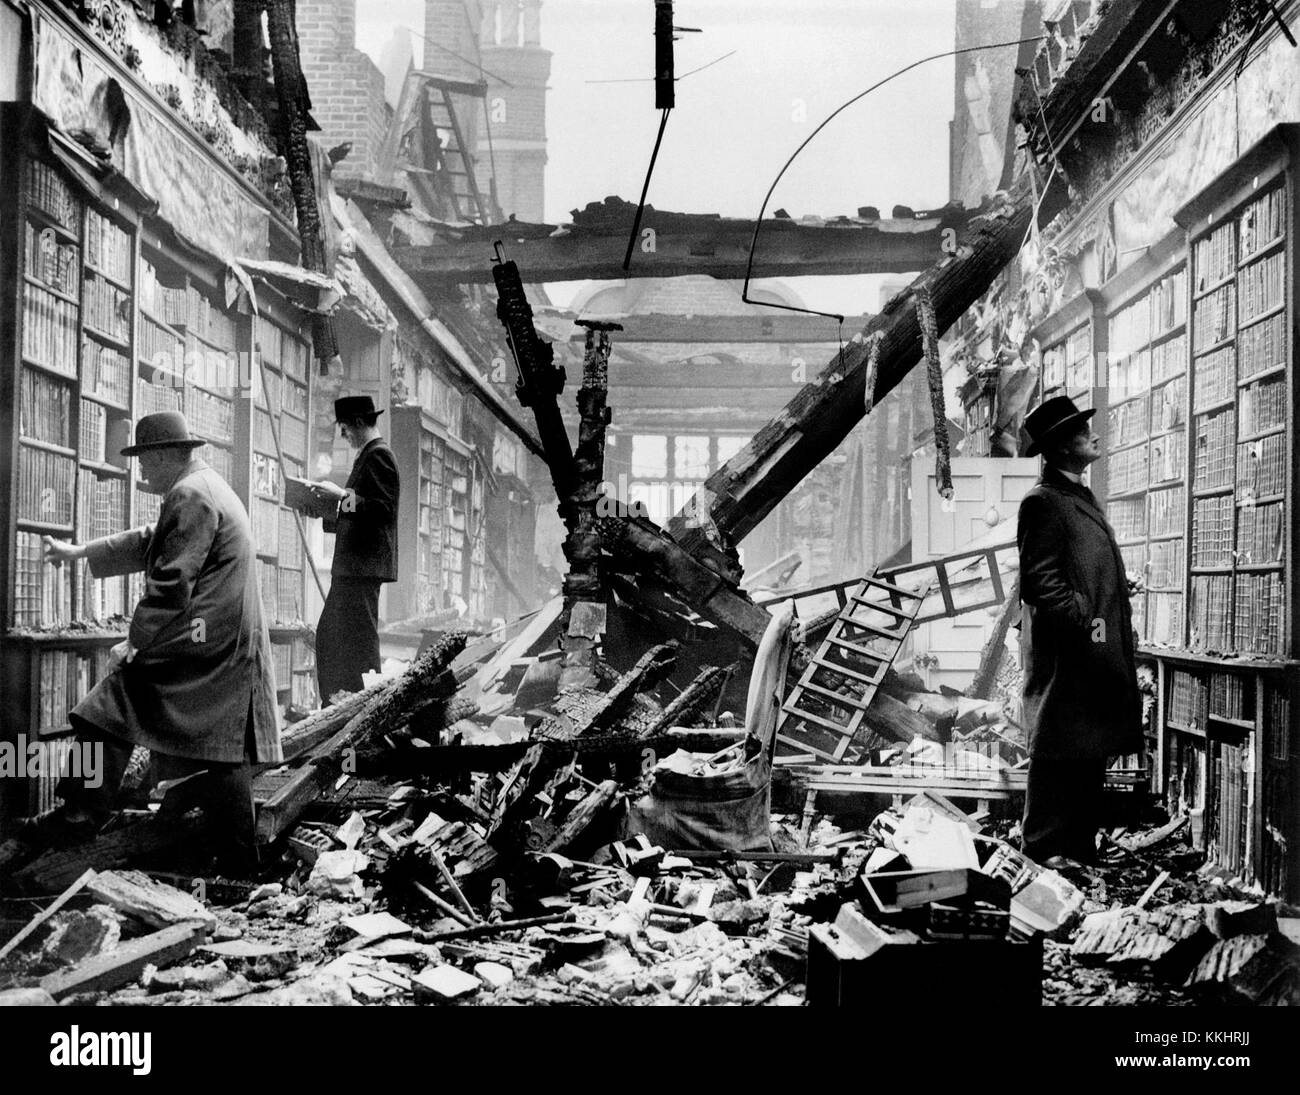 HOLLAND HOUSE, Kensington, London. An interior view of the bombed library at Holland House with readers apparently Stock Photo